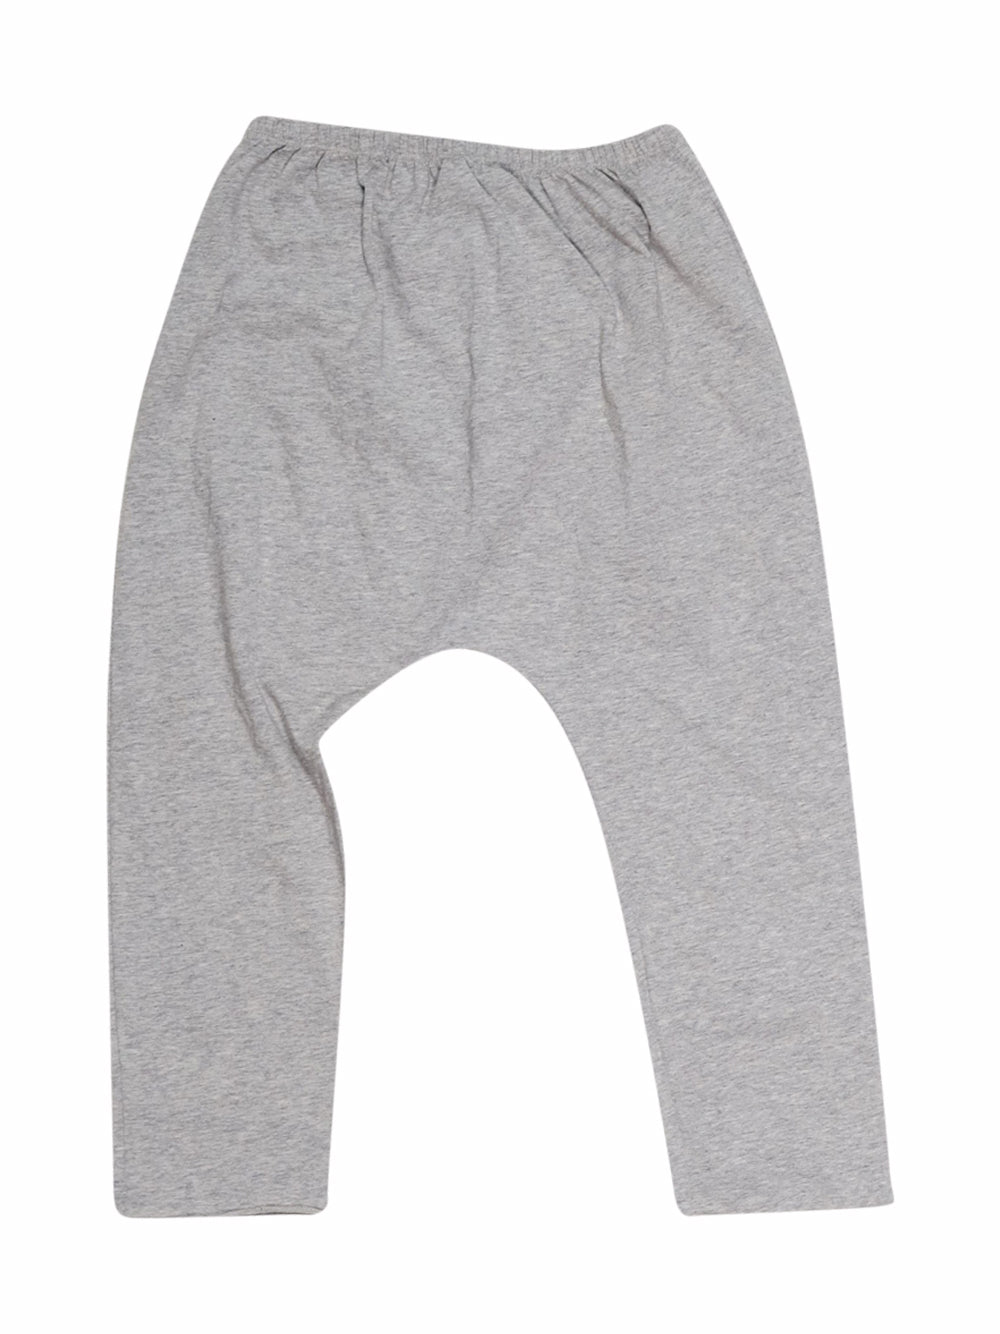 Front photo of Unworn Essence Grey Girl's sport trousers - size 5-6 yrs